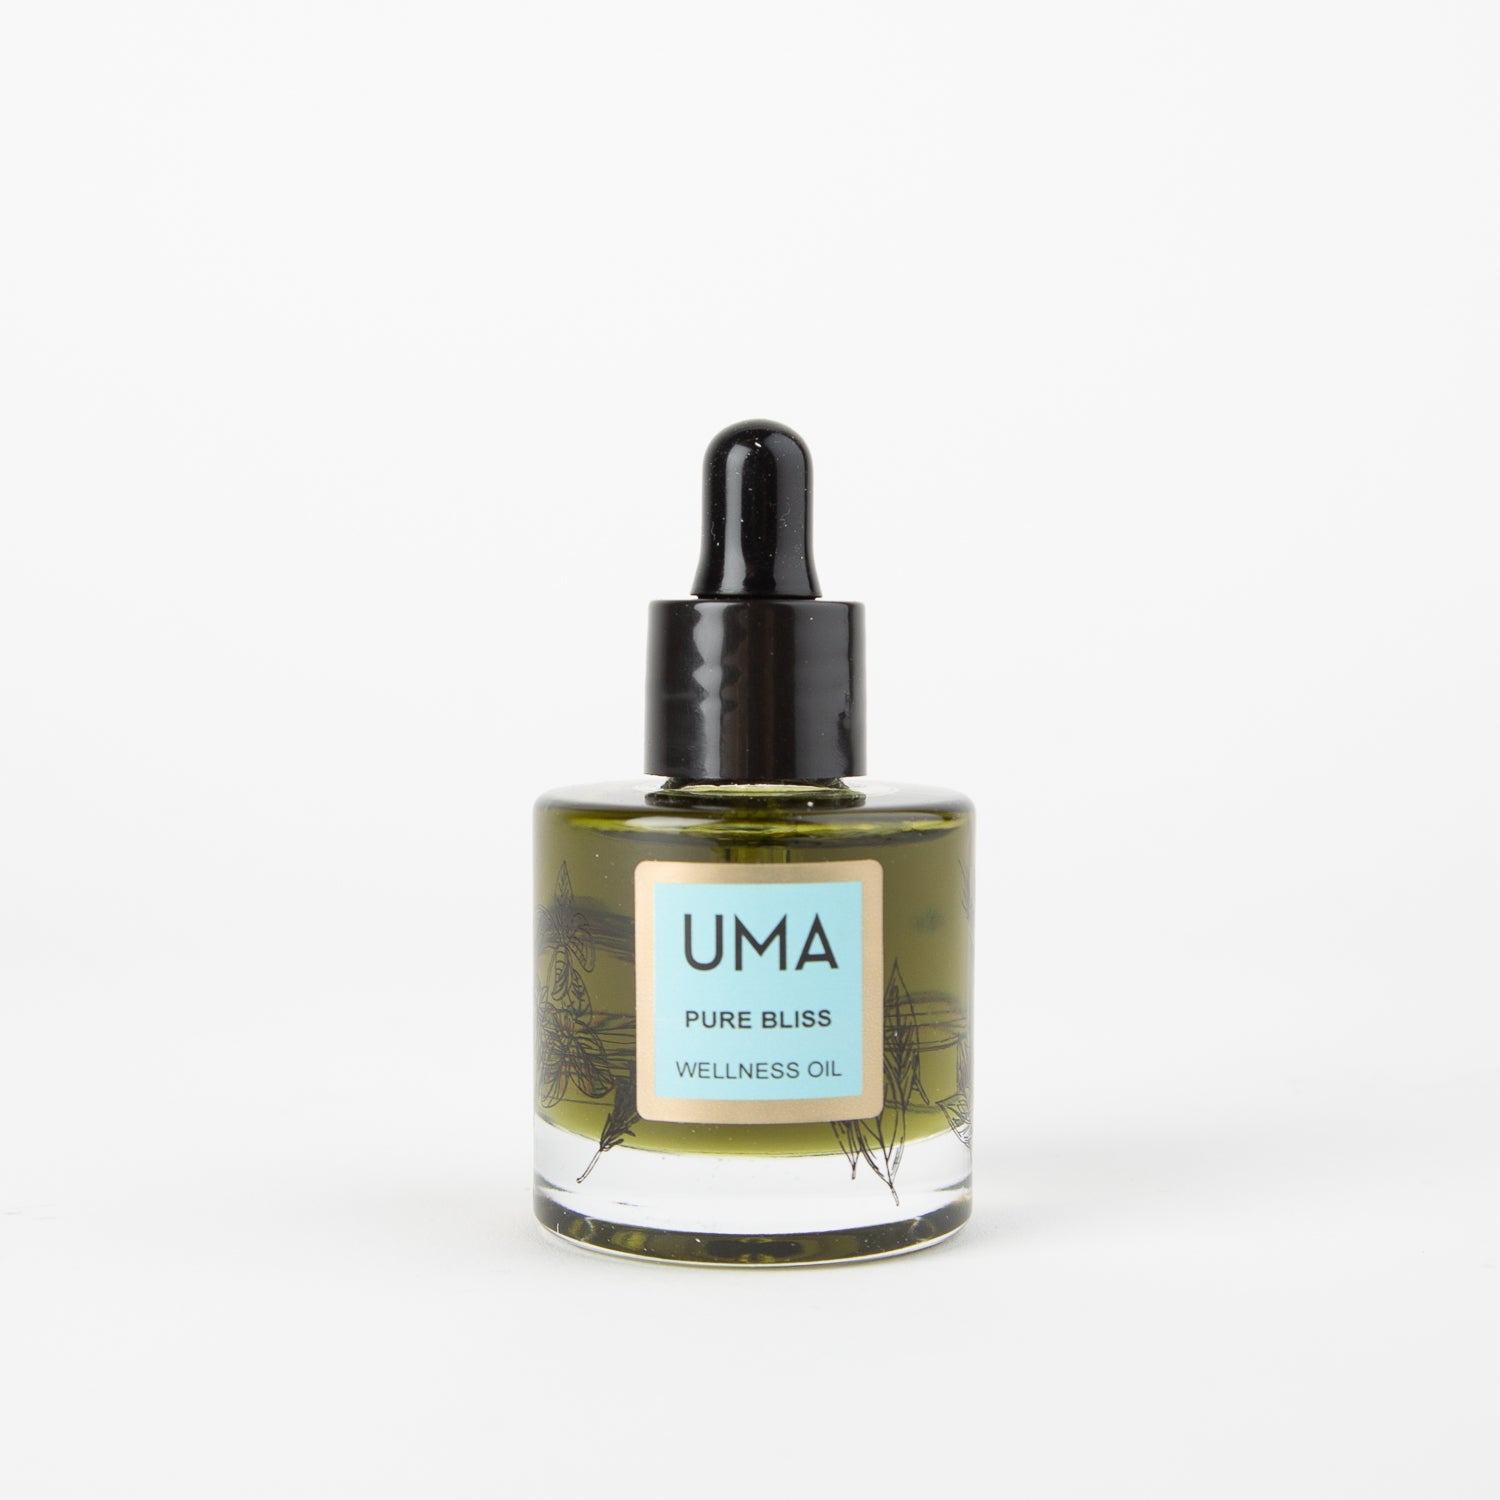 Pure Bliss Wellness Oil aromatherapy by UMA at Secret Location Concept Store